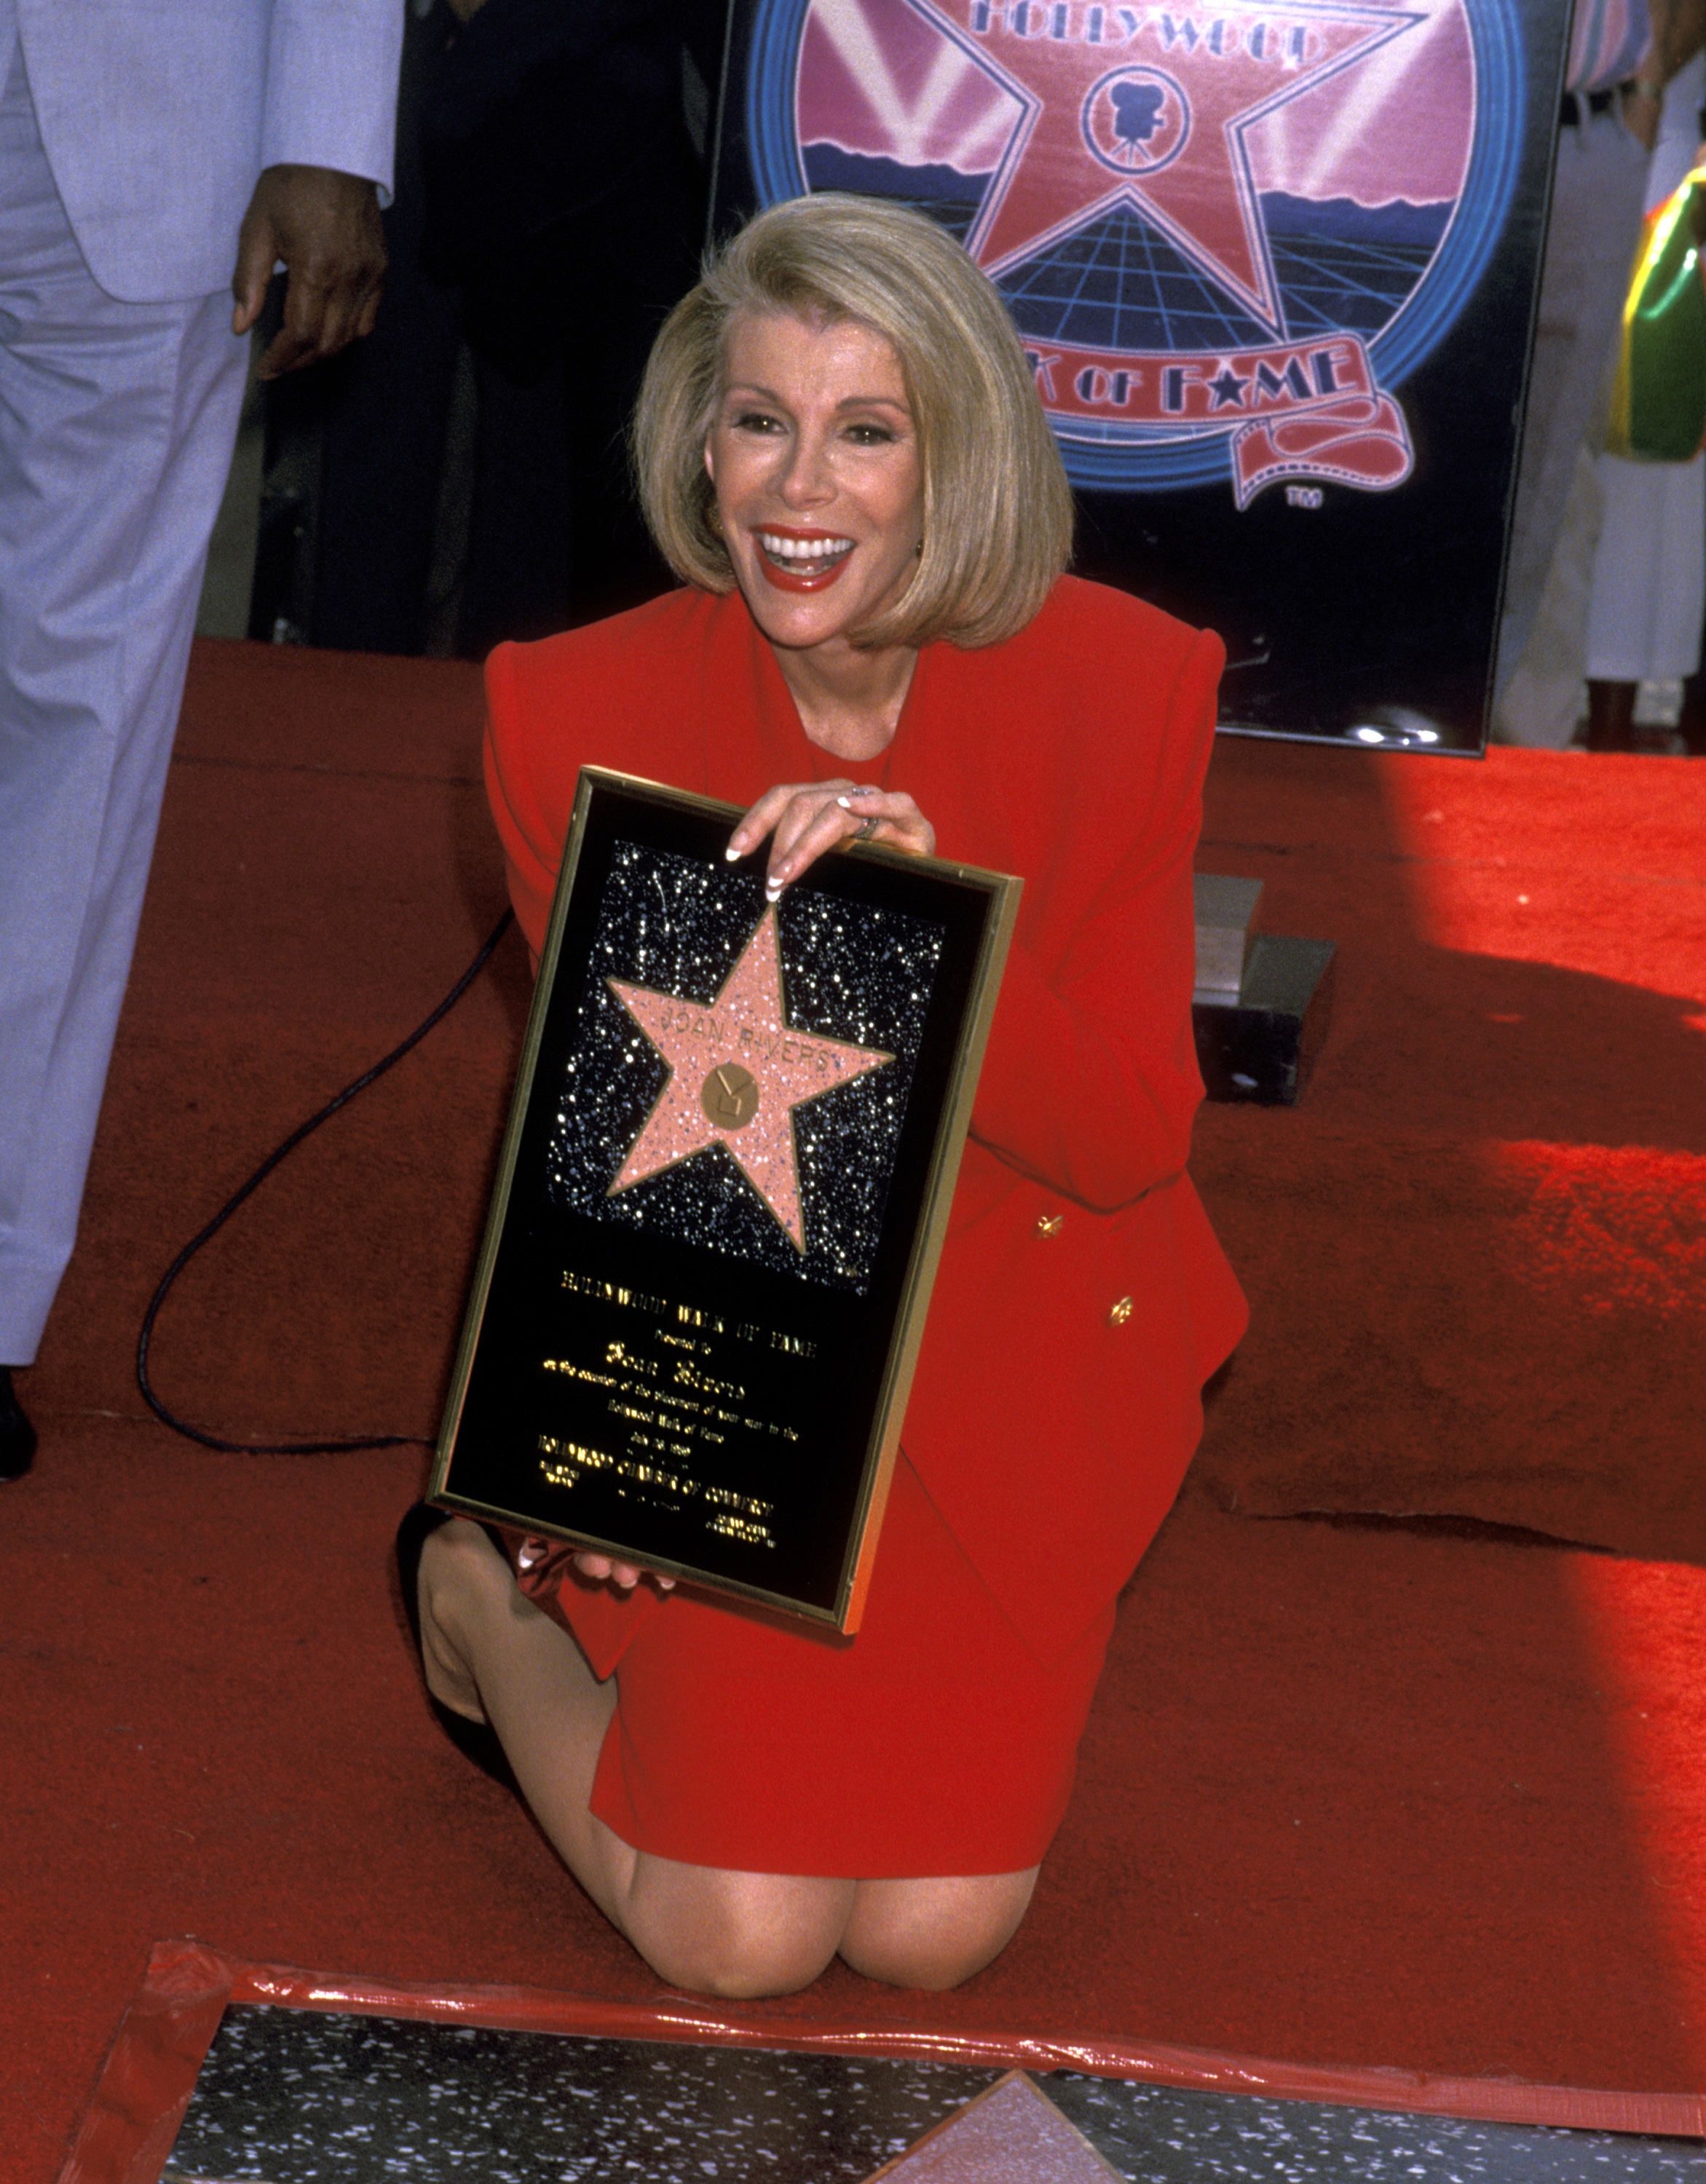 Joan Rivers is honored with a Star on the Hollywood Walk of Fame on July 26, 1989, at Hollywood Boulevard in Hollywood